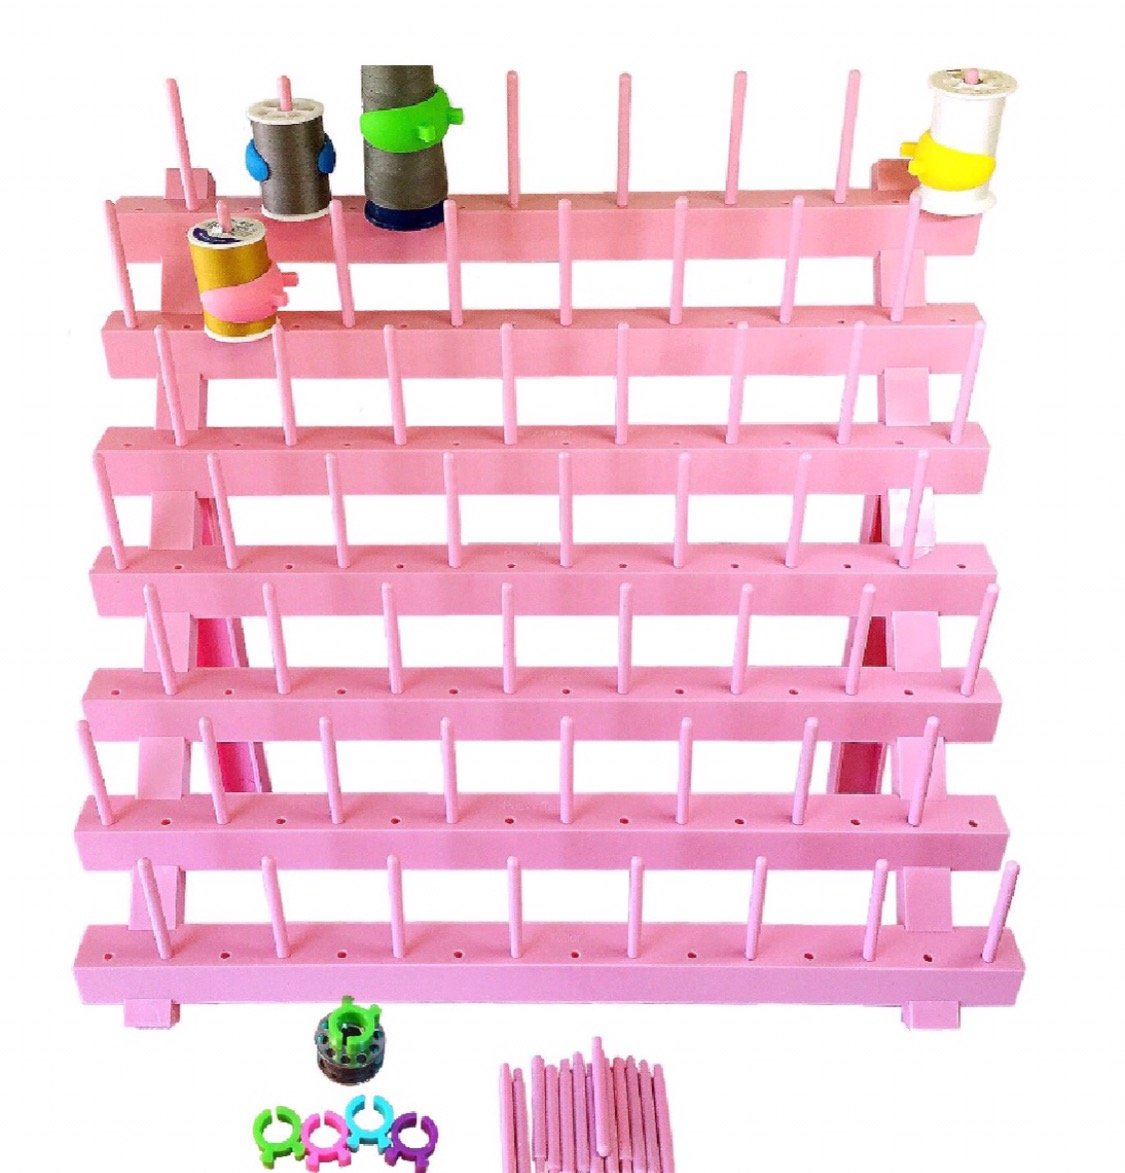 PeavyTailor Foldable Thread Rack Thread Holder Spool Thread Storage Rack Thread Spool Stand Sewing Cone Storage Organizer, Sewing Quilting Embroidery Pink peavytailor.com P2017-7